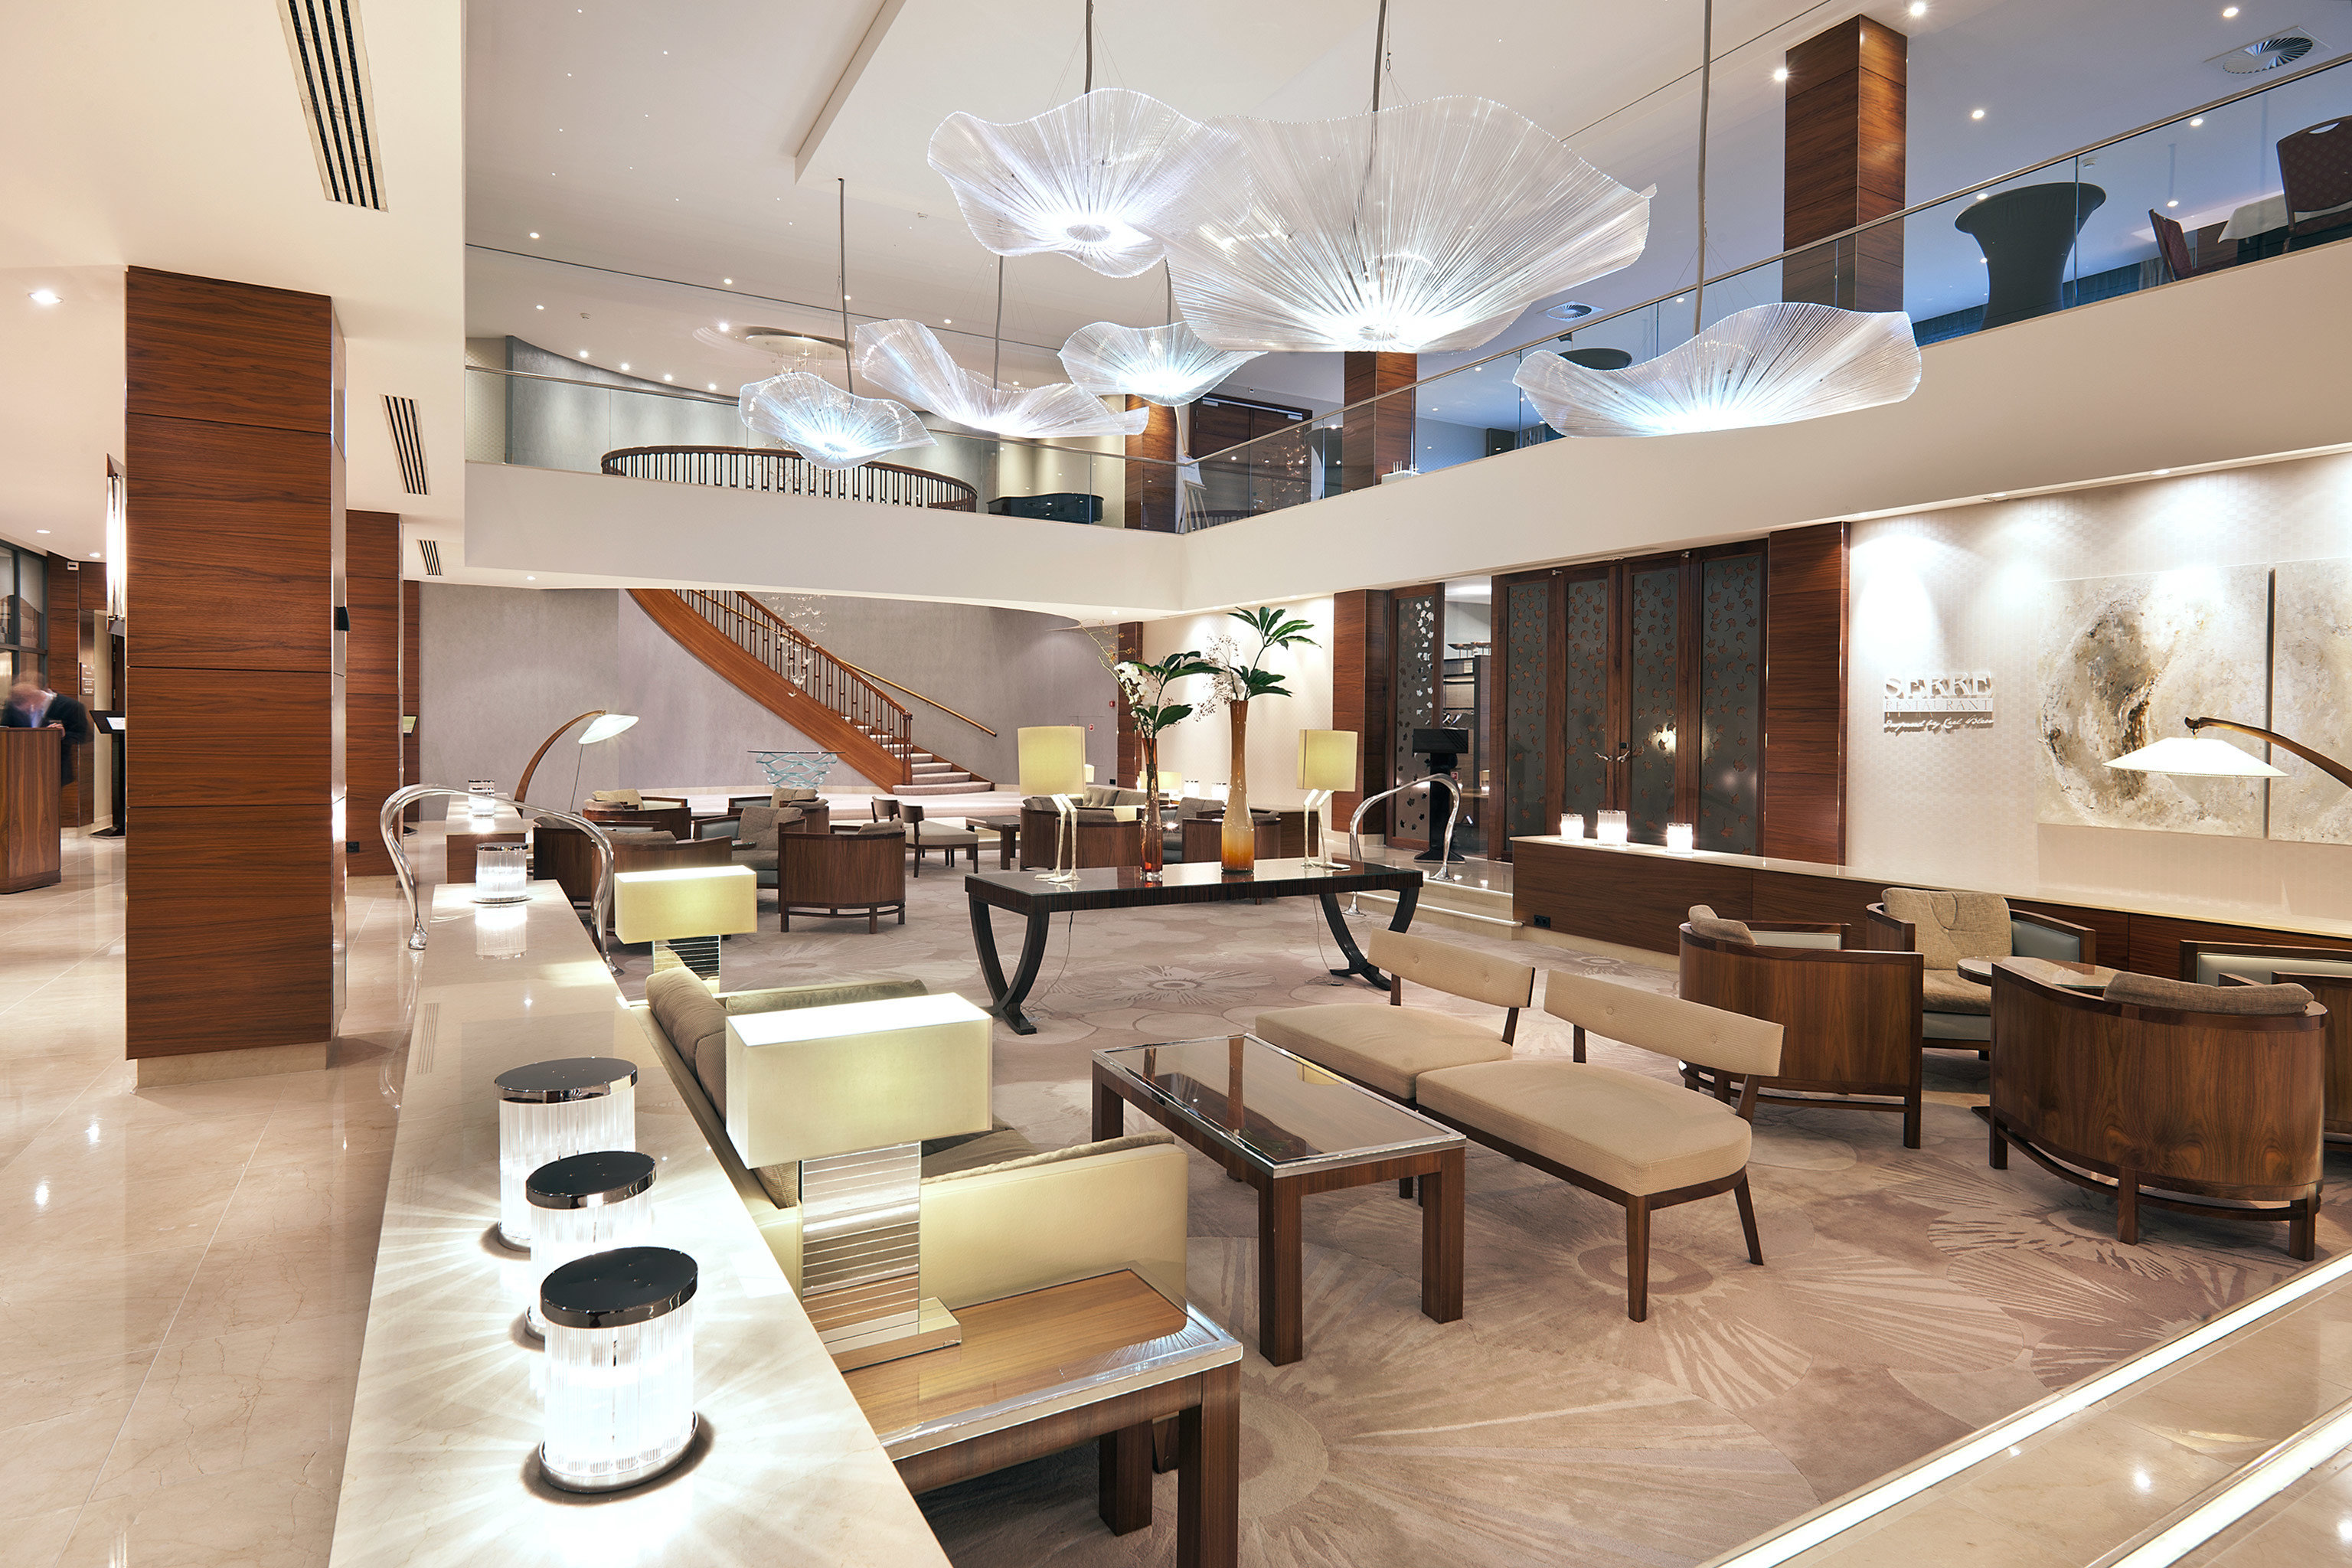 Business City Lobby Luxury property condominium lighting living room restaurant conference hall